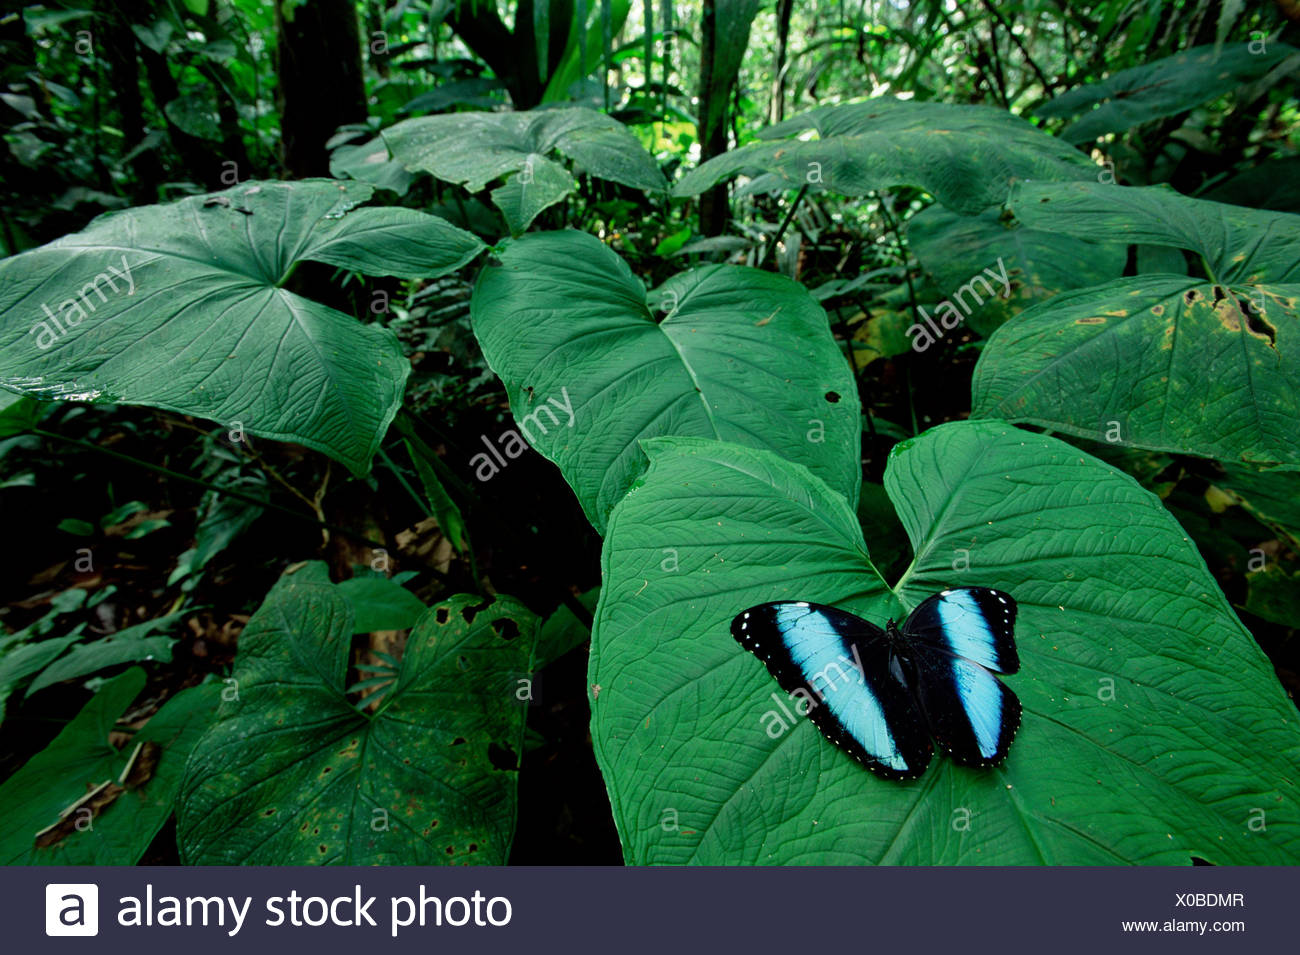 Morpho butterfly displaying on leaf (Morpho achilles). Amazonia, Ecuador. - Stock Image